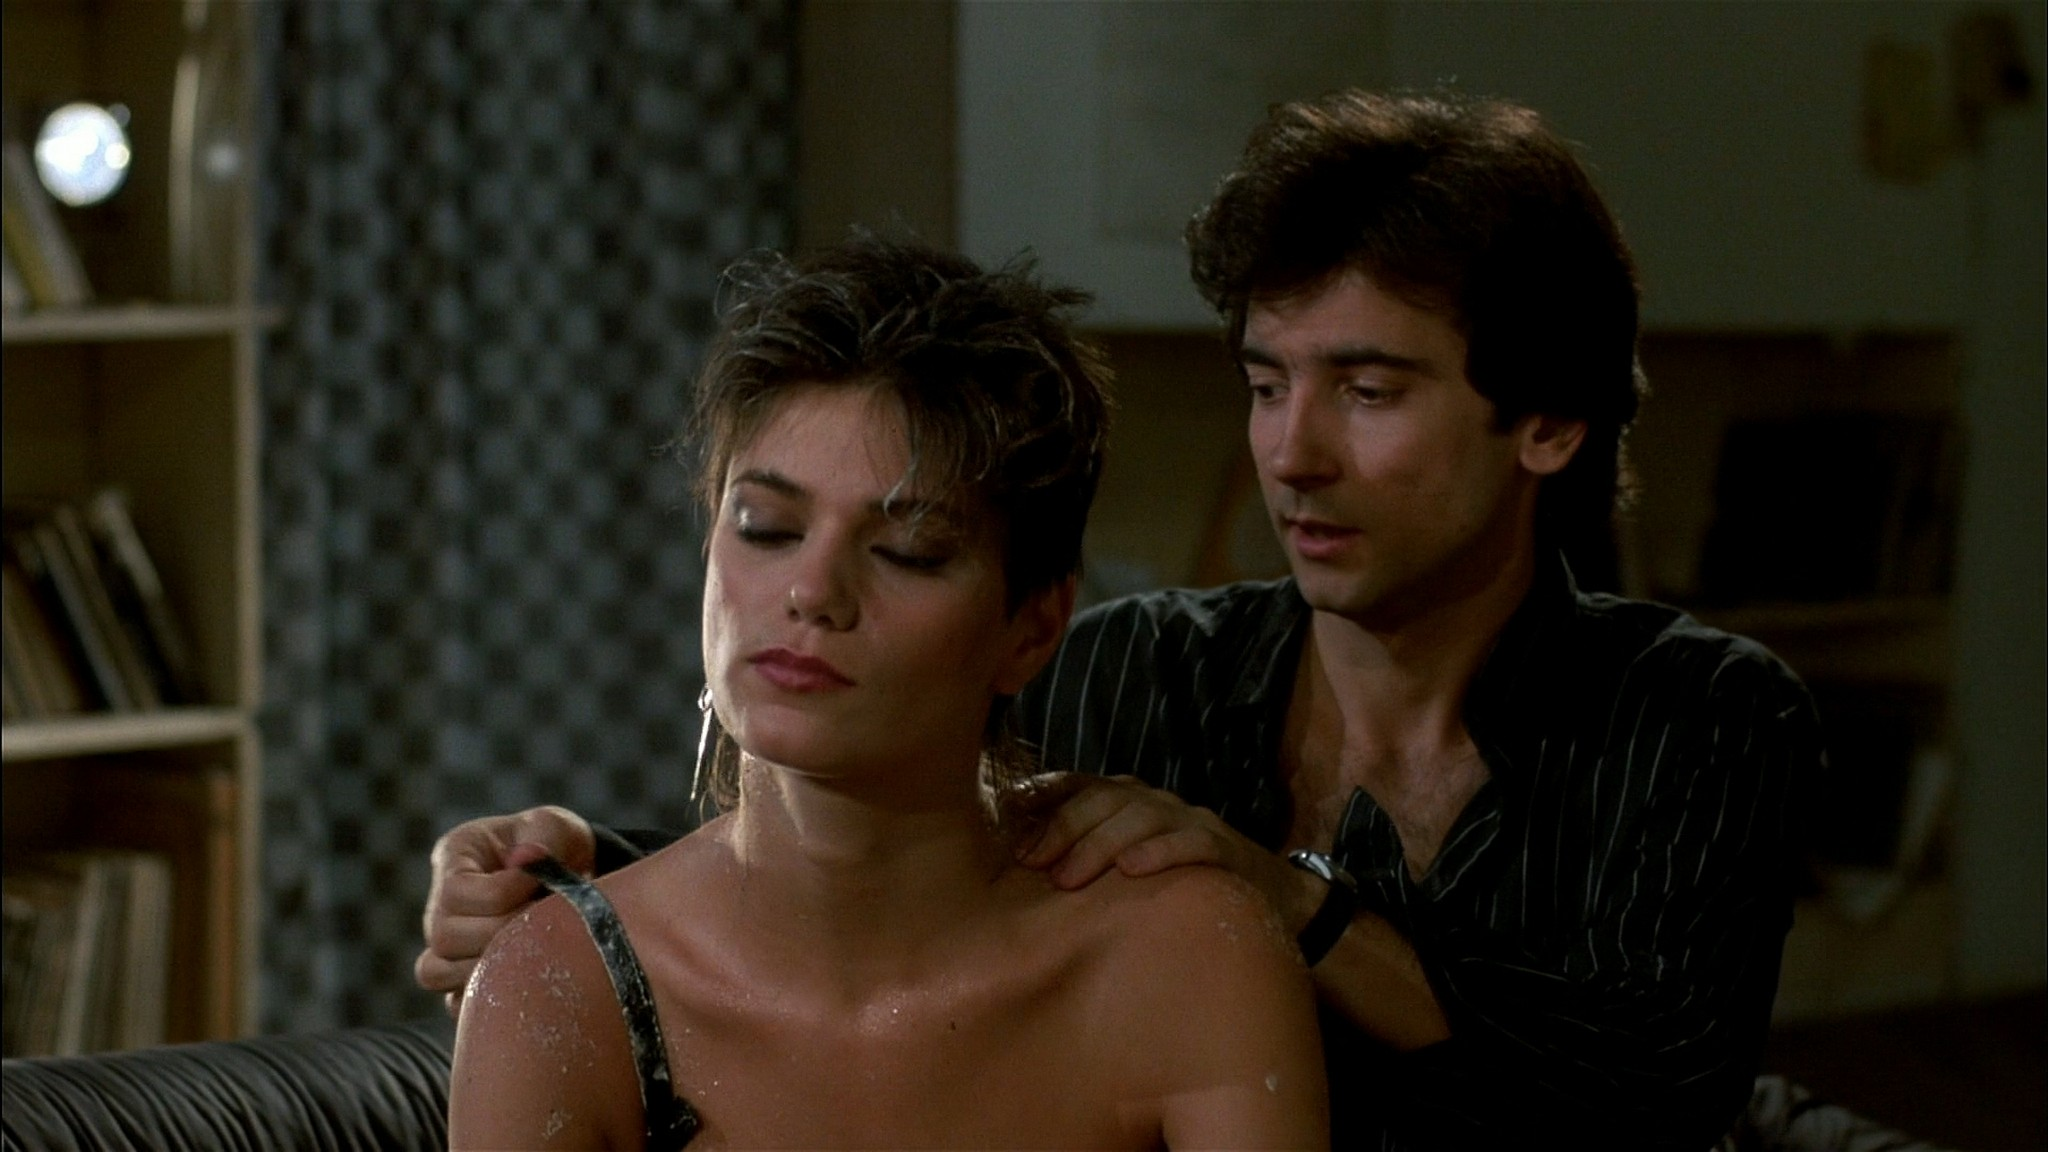 Linda Fiorentino nude Rosanna Arquette hot and sexy - After Hours (1985) HD 1080p BluRay (10)